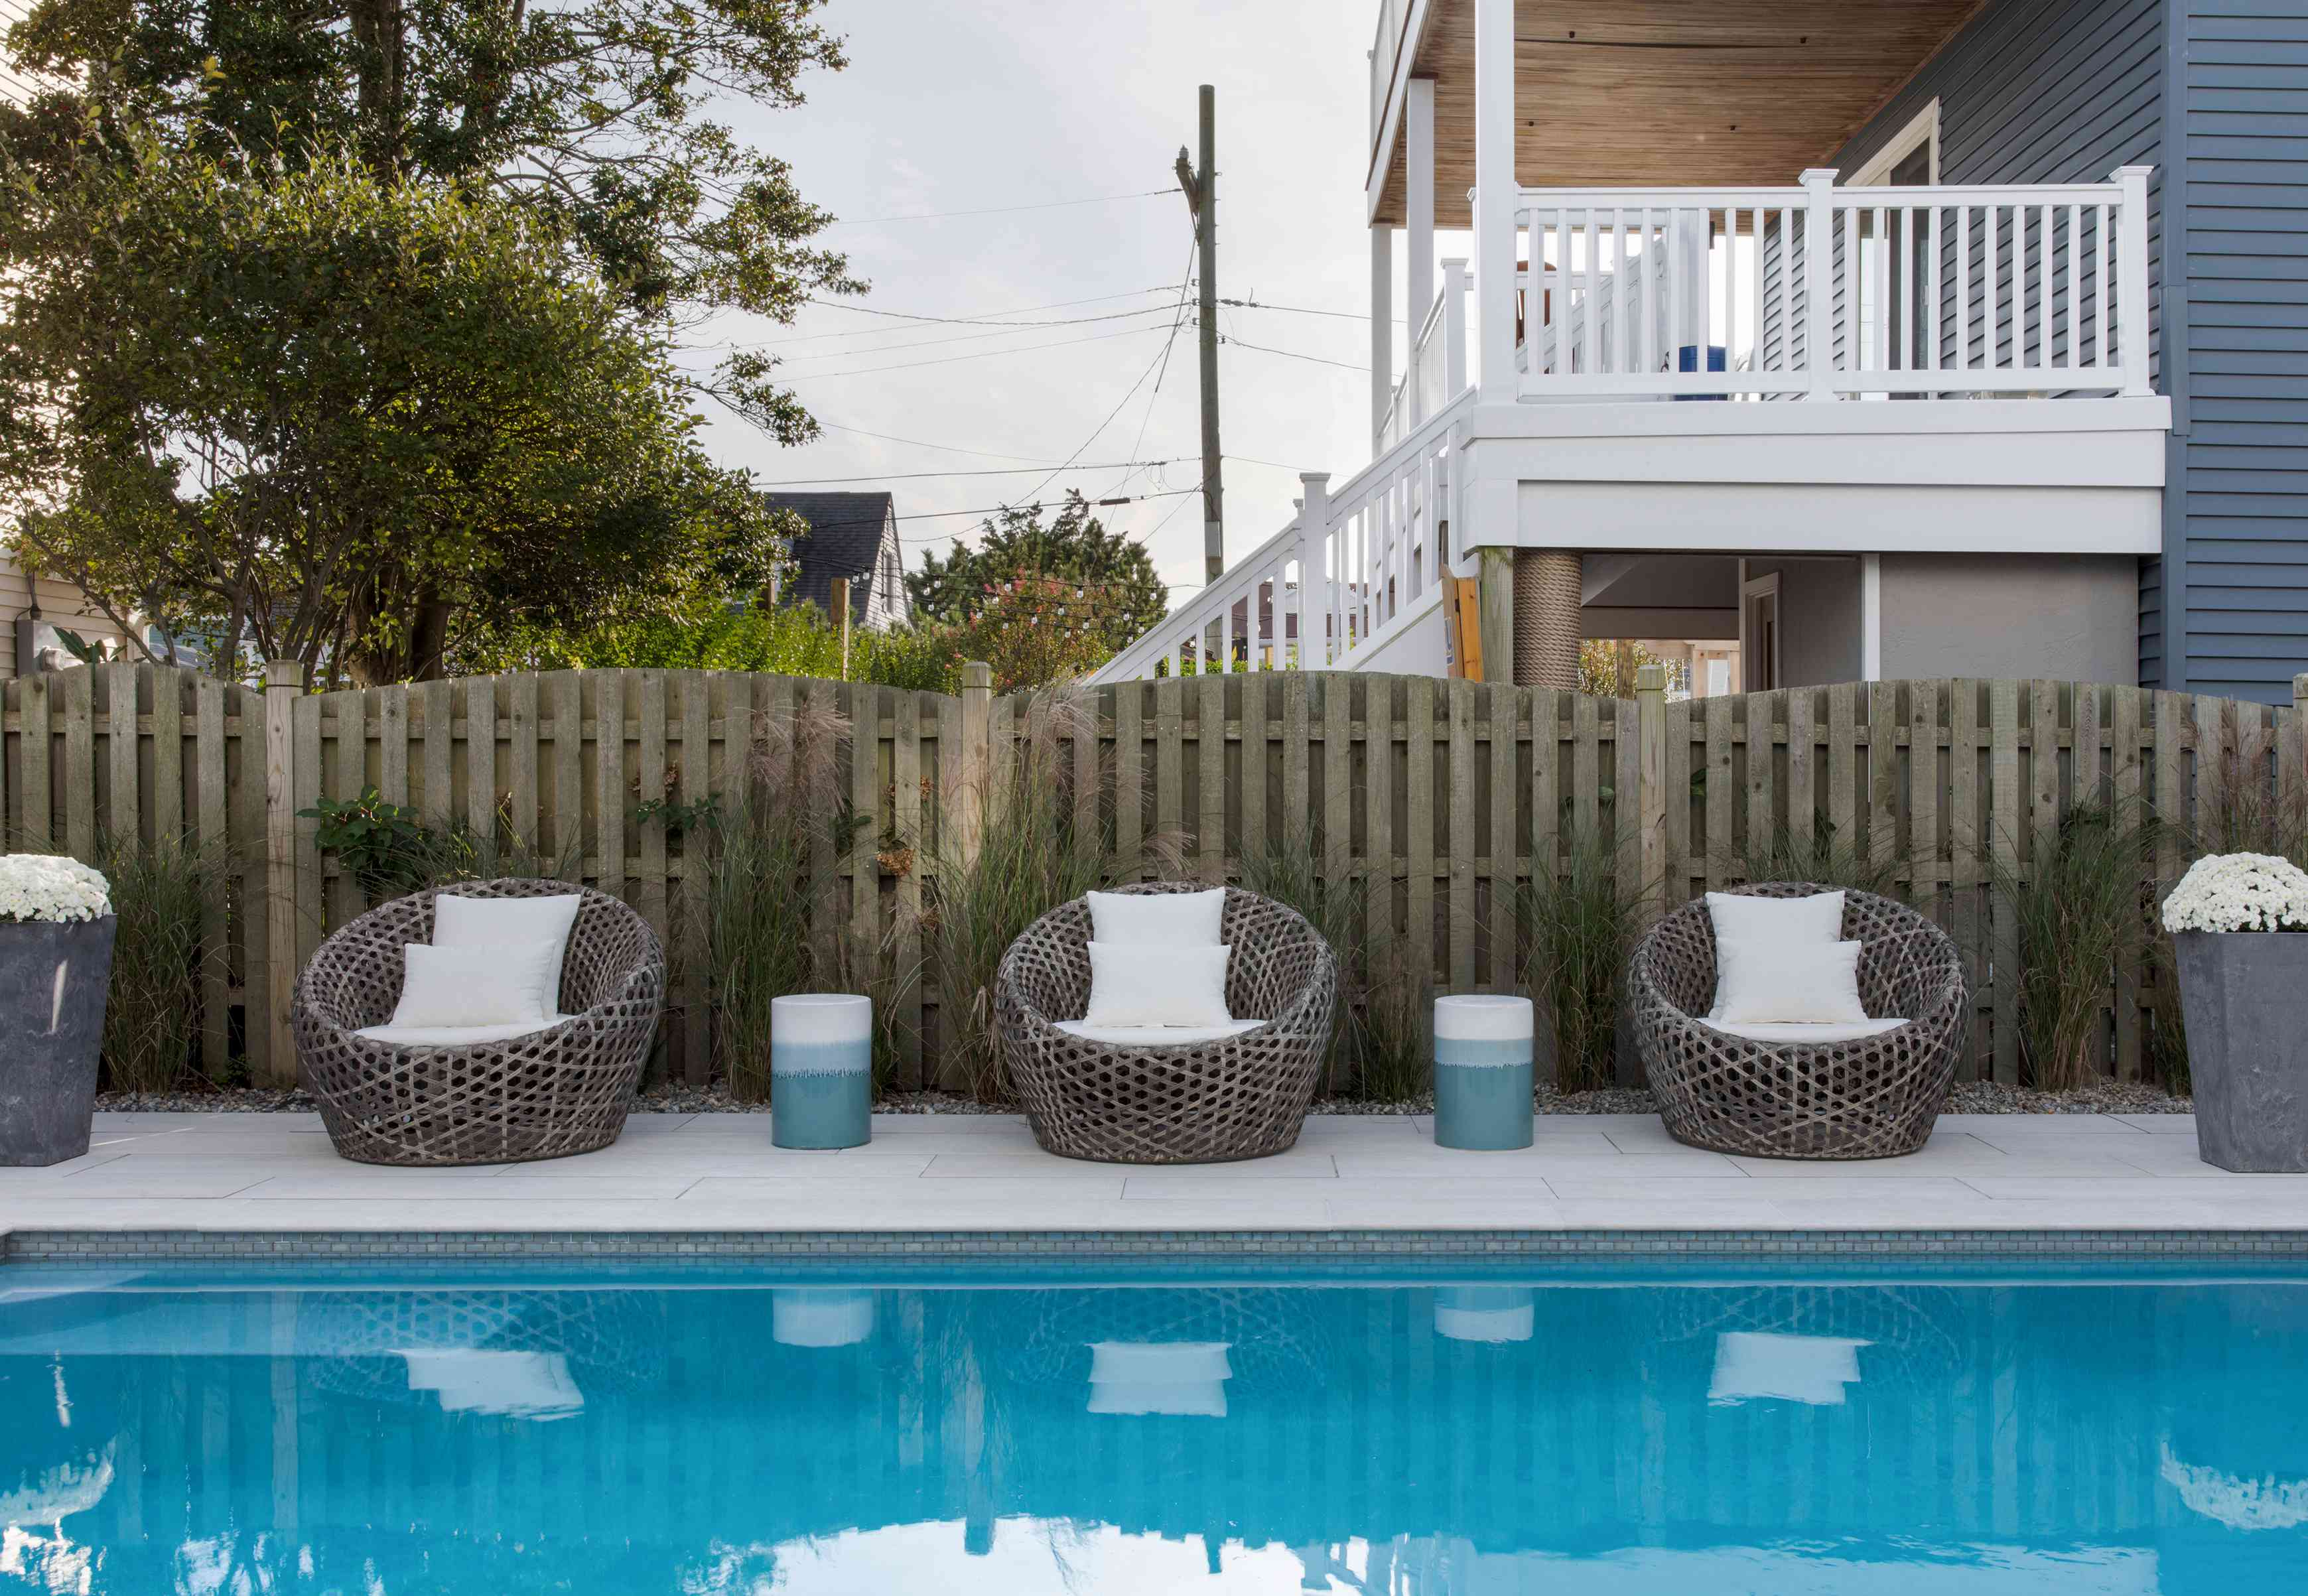 Cocoon chairs surround the pool at the Long Beach Island home of Karen B. Wolfe